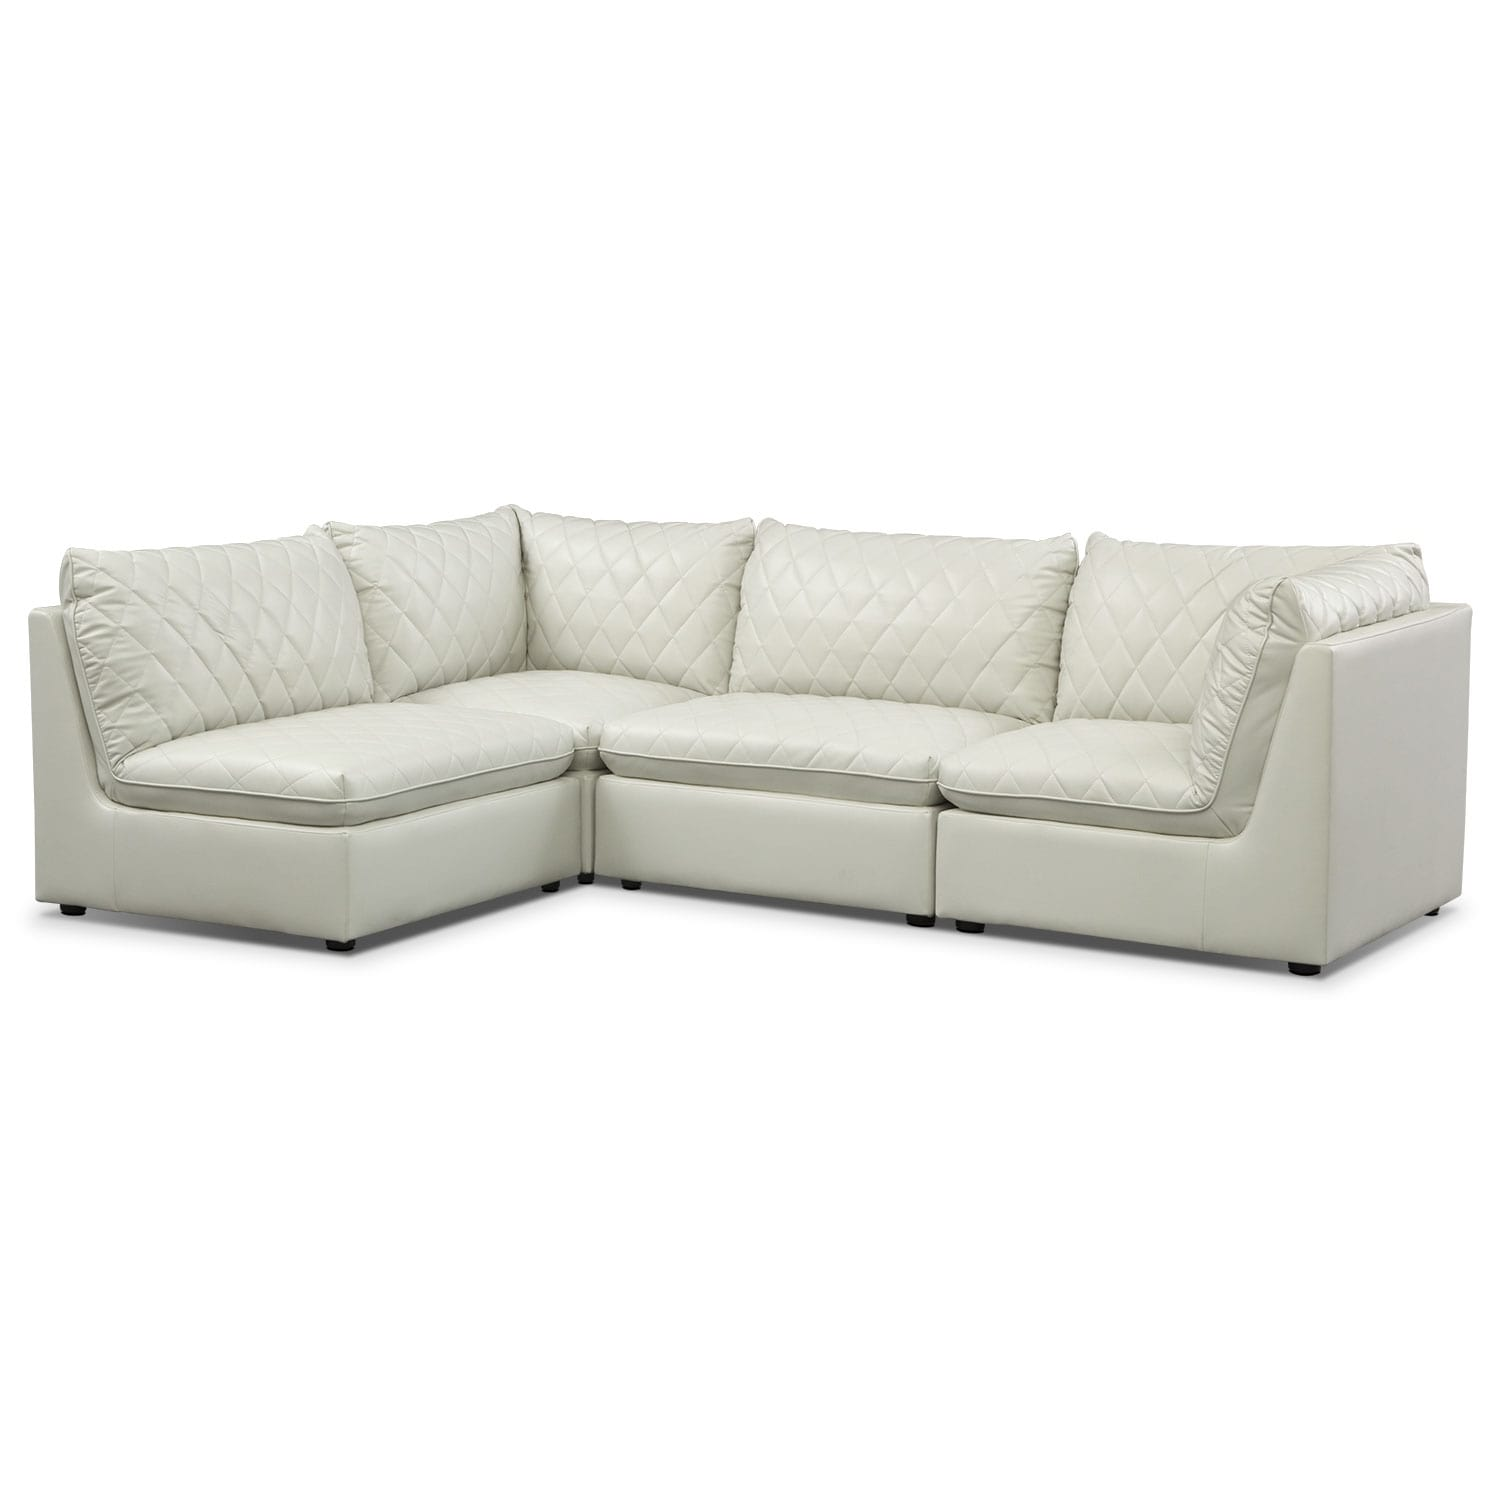 Coco Mist 4 Pc. Sectional